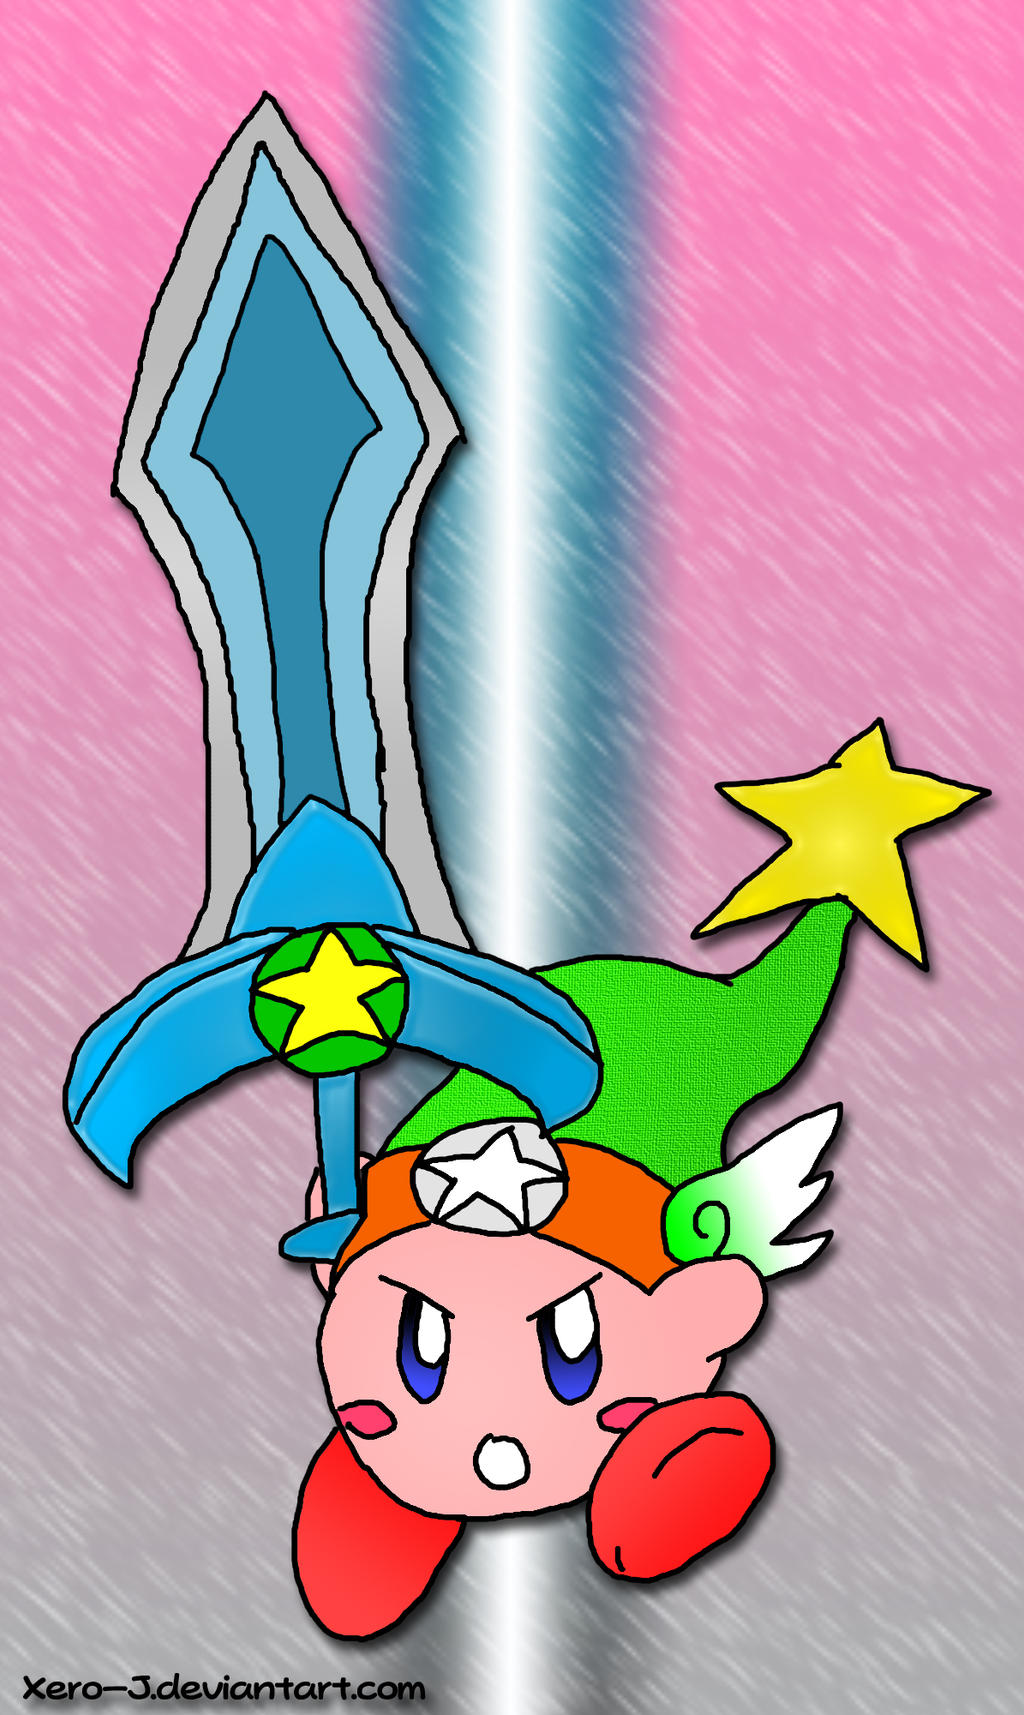 ultra sword kirby - photo #18